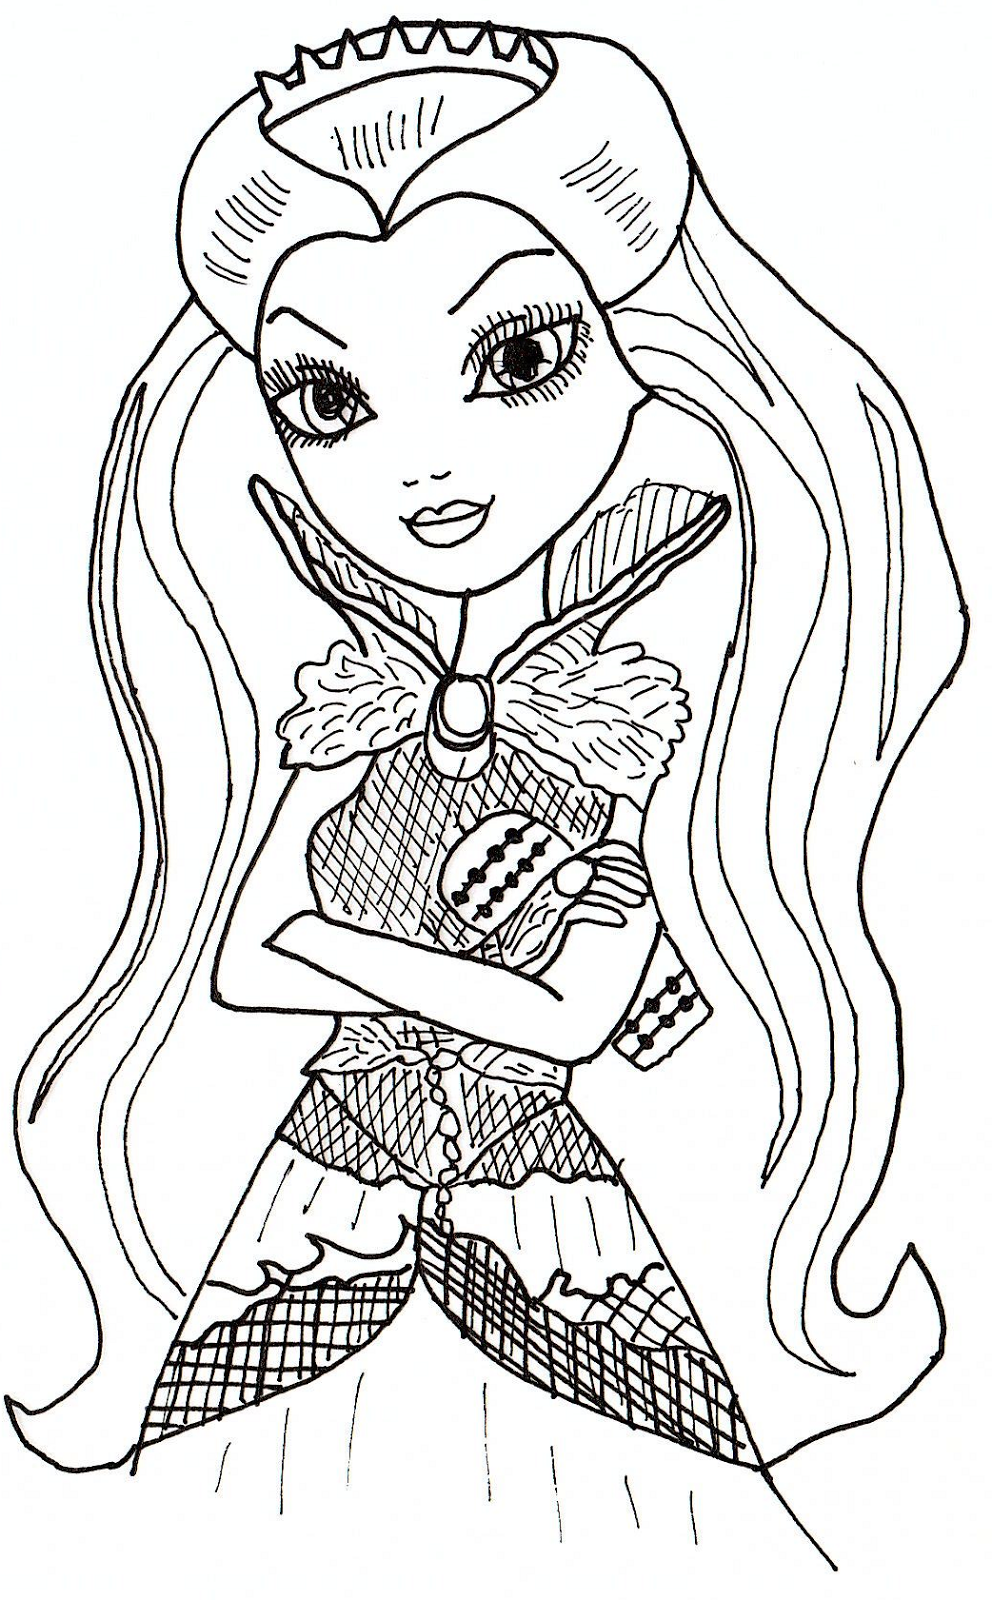 Free printable ever after high coloring pages june 2013 for Madeline coloring pages printable